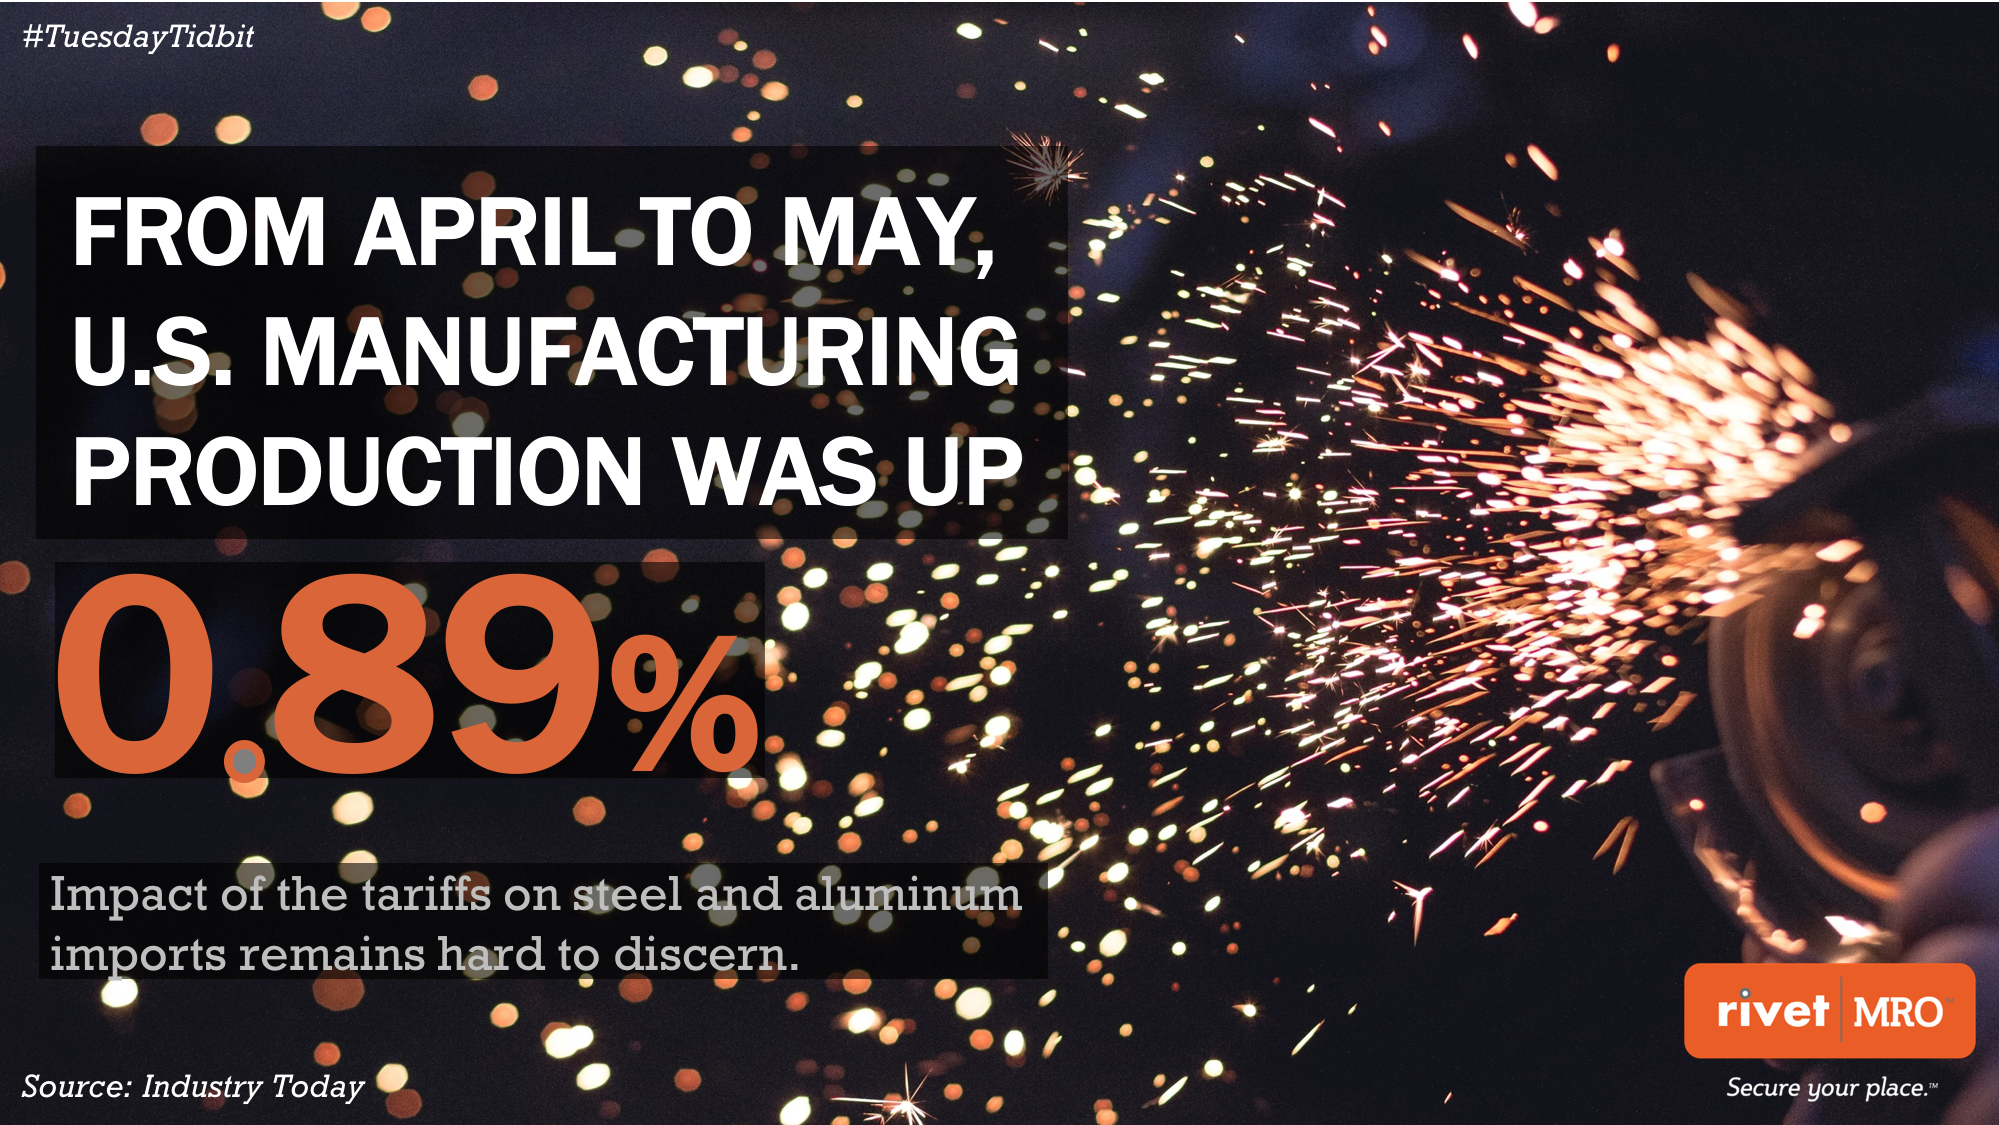 Manufacturing Production Tuesday Tidbit by Rivet MRO Industrial Marketing Agency and Distributor Co-op Marketing Consultant.png